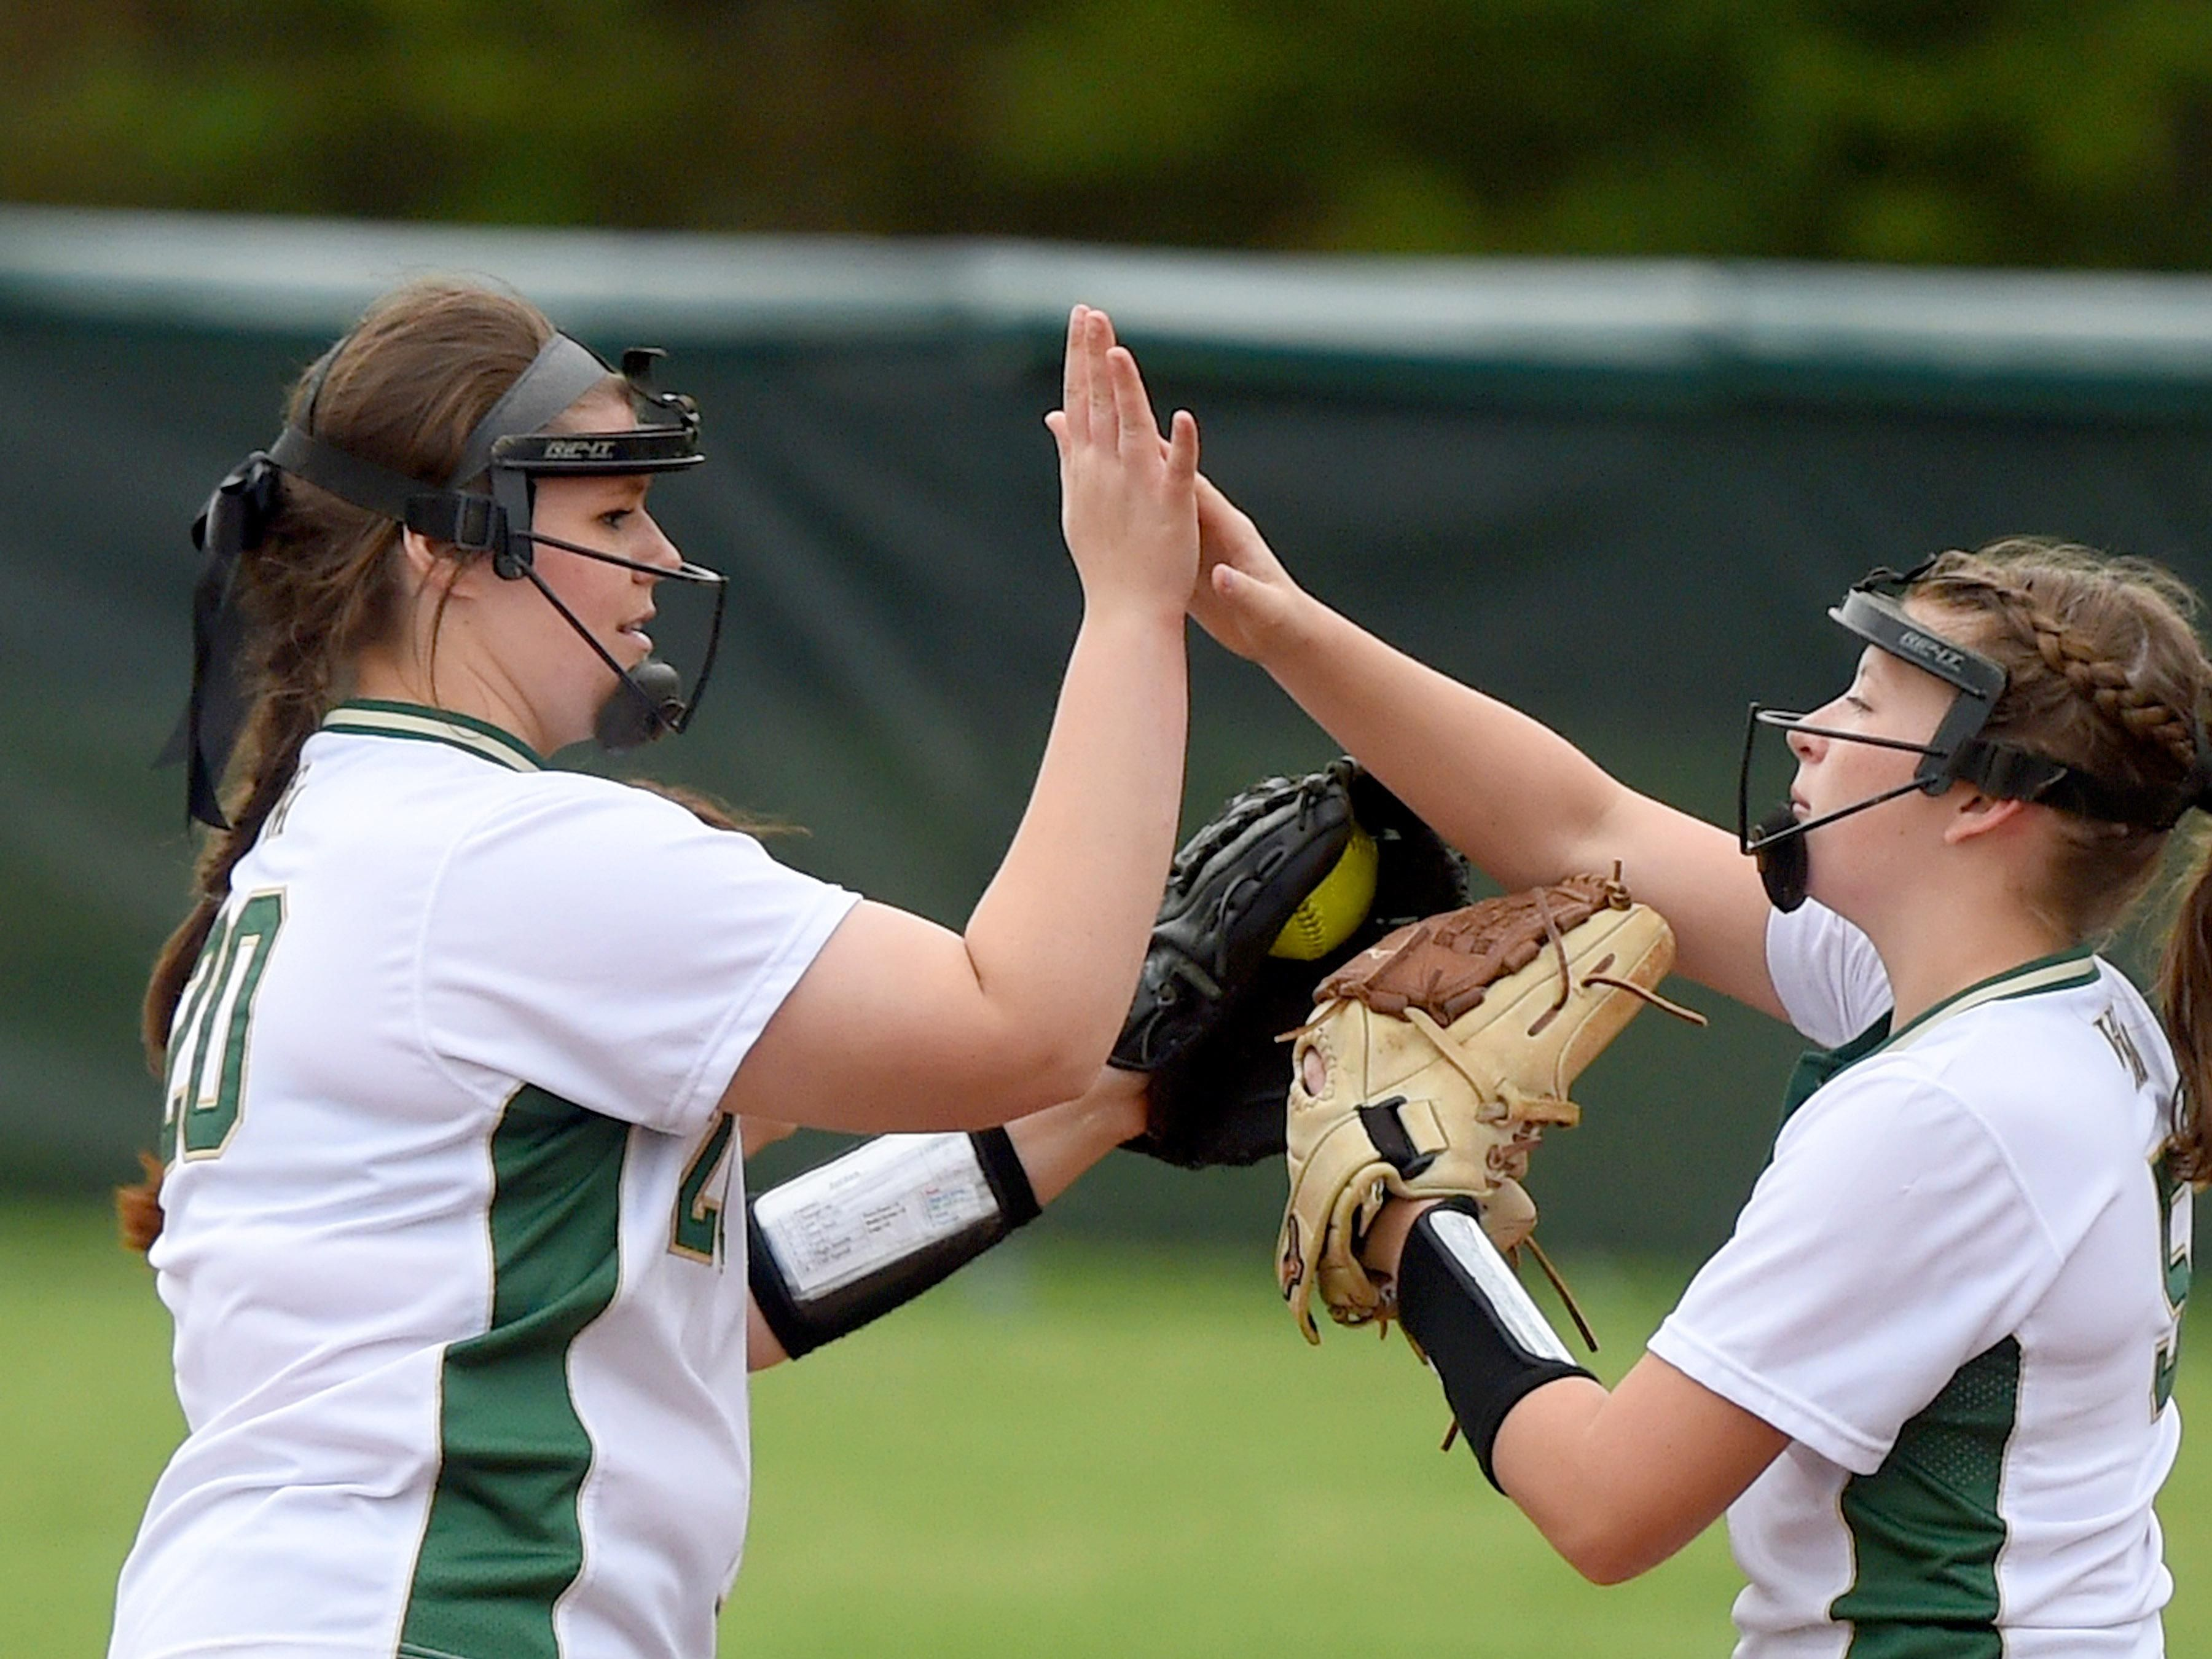 Wilson Memorial pitcher Jordan Sondrol high-fives teammate Emma Peery before taking the pitchers mound at the start of the first inning during a softball game played in Fishersville on Friday, April 1, 2016.